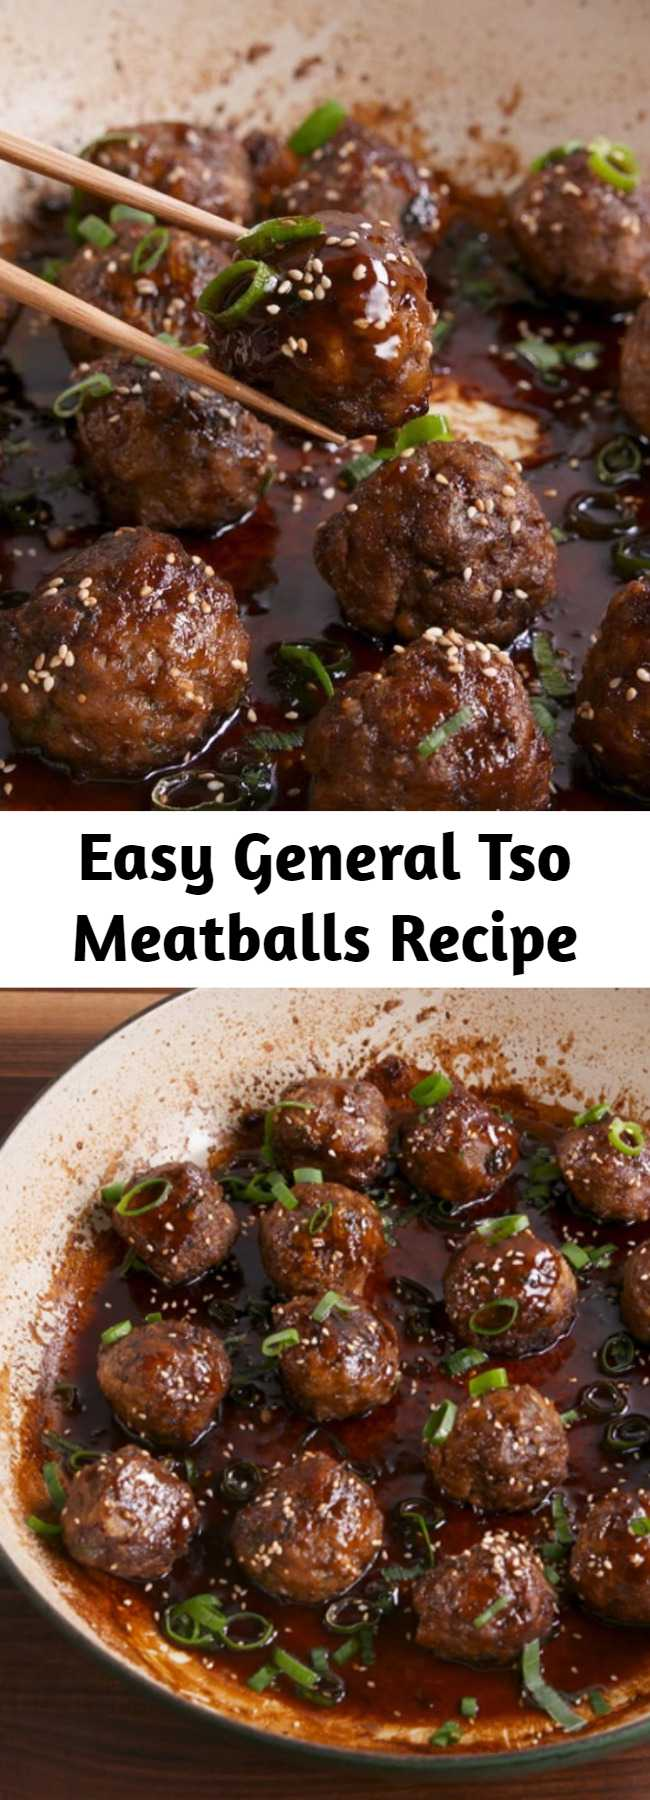 Easy General Tso Meatballs Recipe - Skip the takeout and create your own version as a meatball. #recipe #easyrecipe #easy #easydinner #dinner #dinnerrecipes #meatballs #beef #groundbeef #chinese #chinesefood